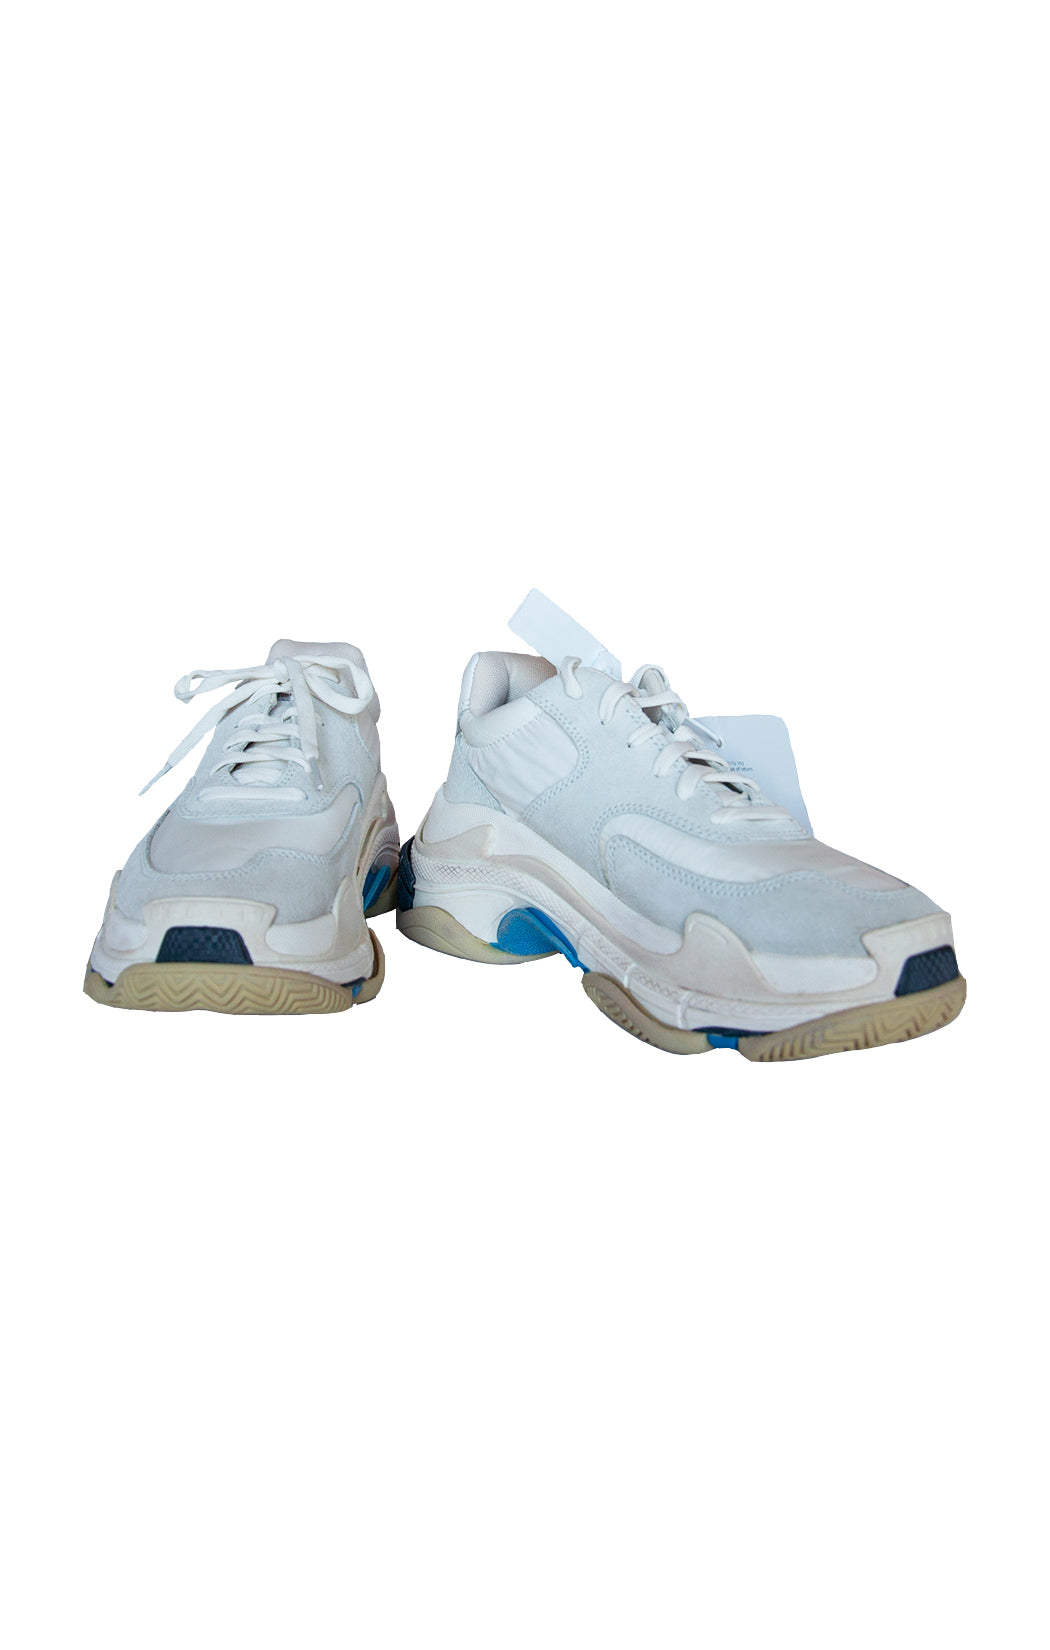 Front view of BALENCIAGA Sneakers with Tags Size: US 9